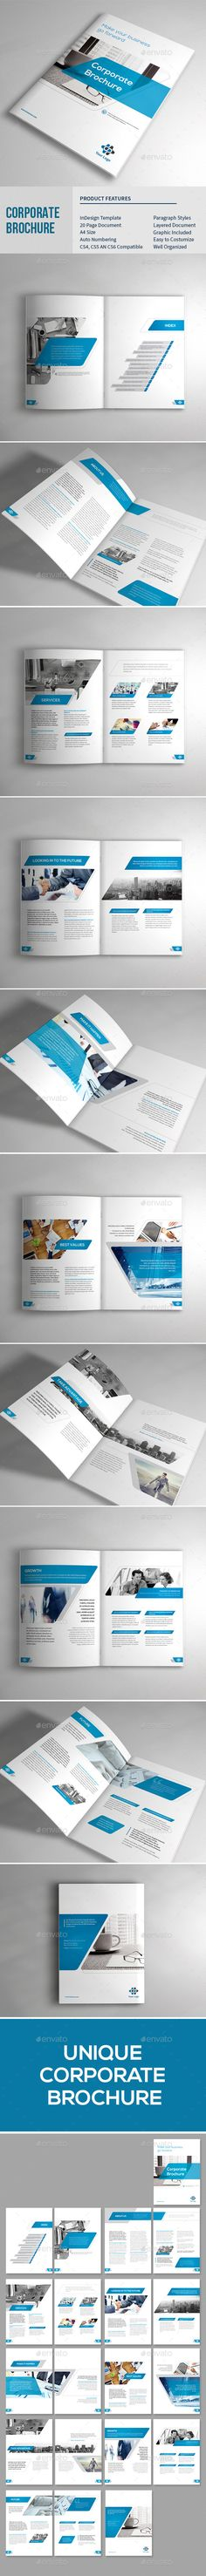 Corporate Brochure  -  InDesign Template • Only available here! ➝ https://graphicriver.net/item/corporate-brochure/14467434?ref=pxcr